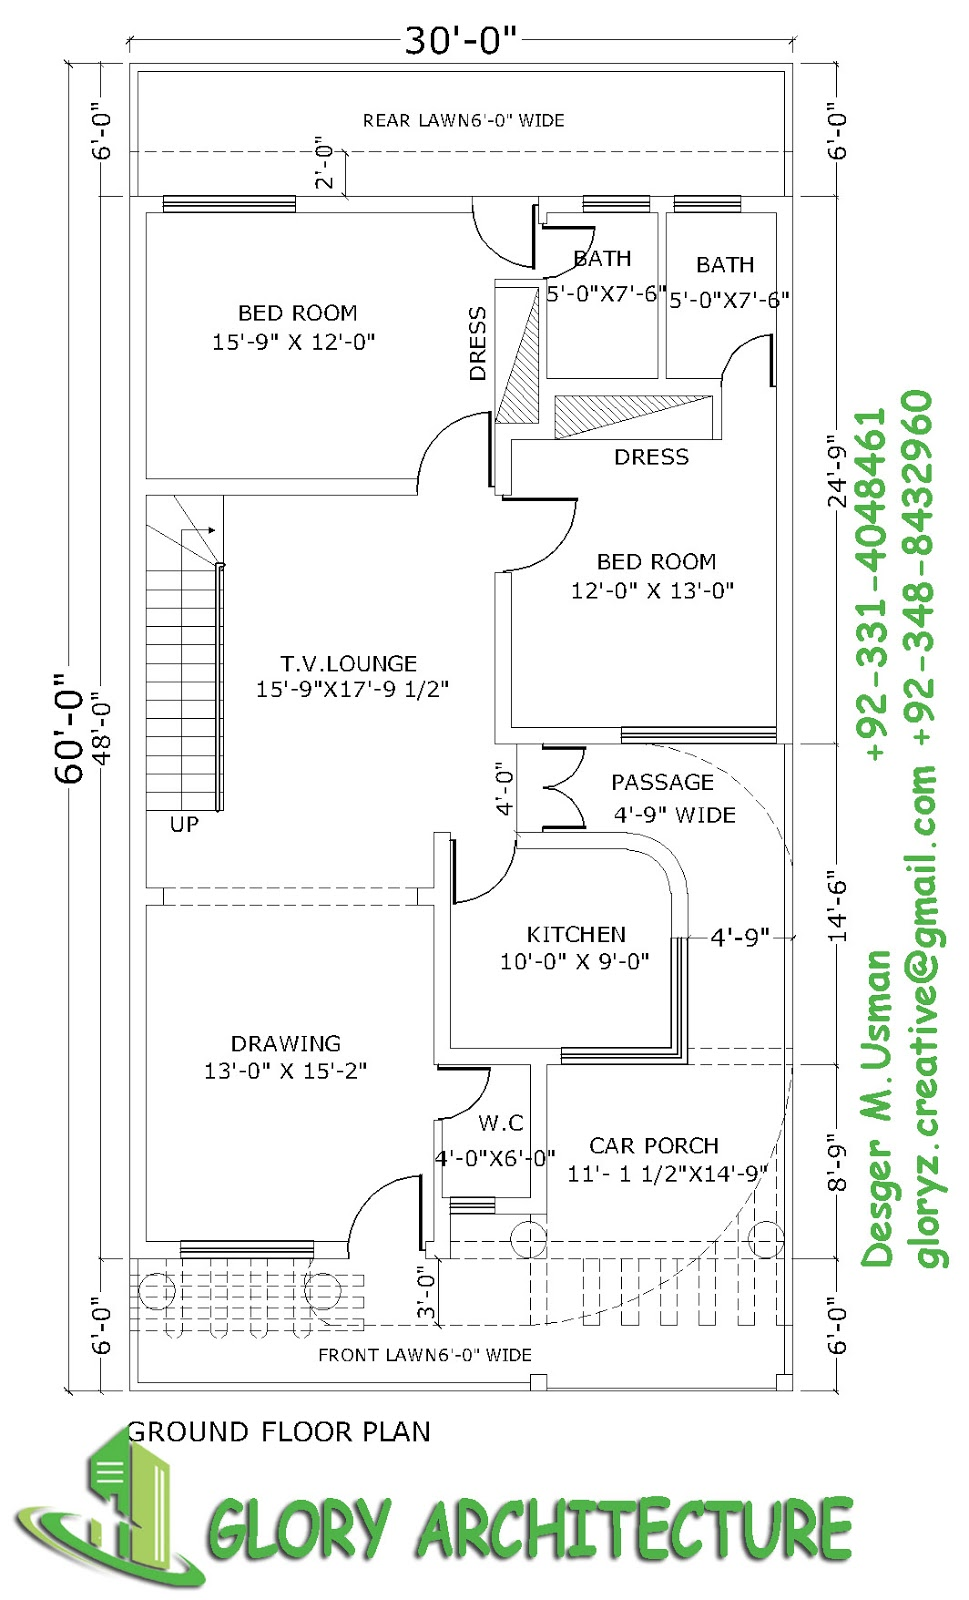 Ground Floor Elevation View : House plan elevation d view drawings pakistan